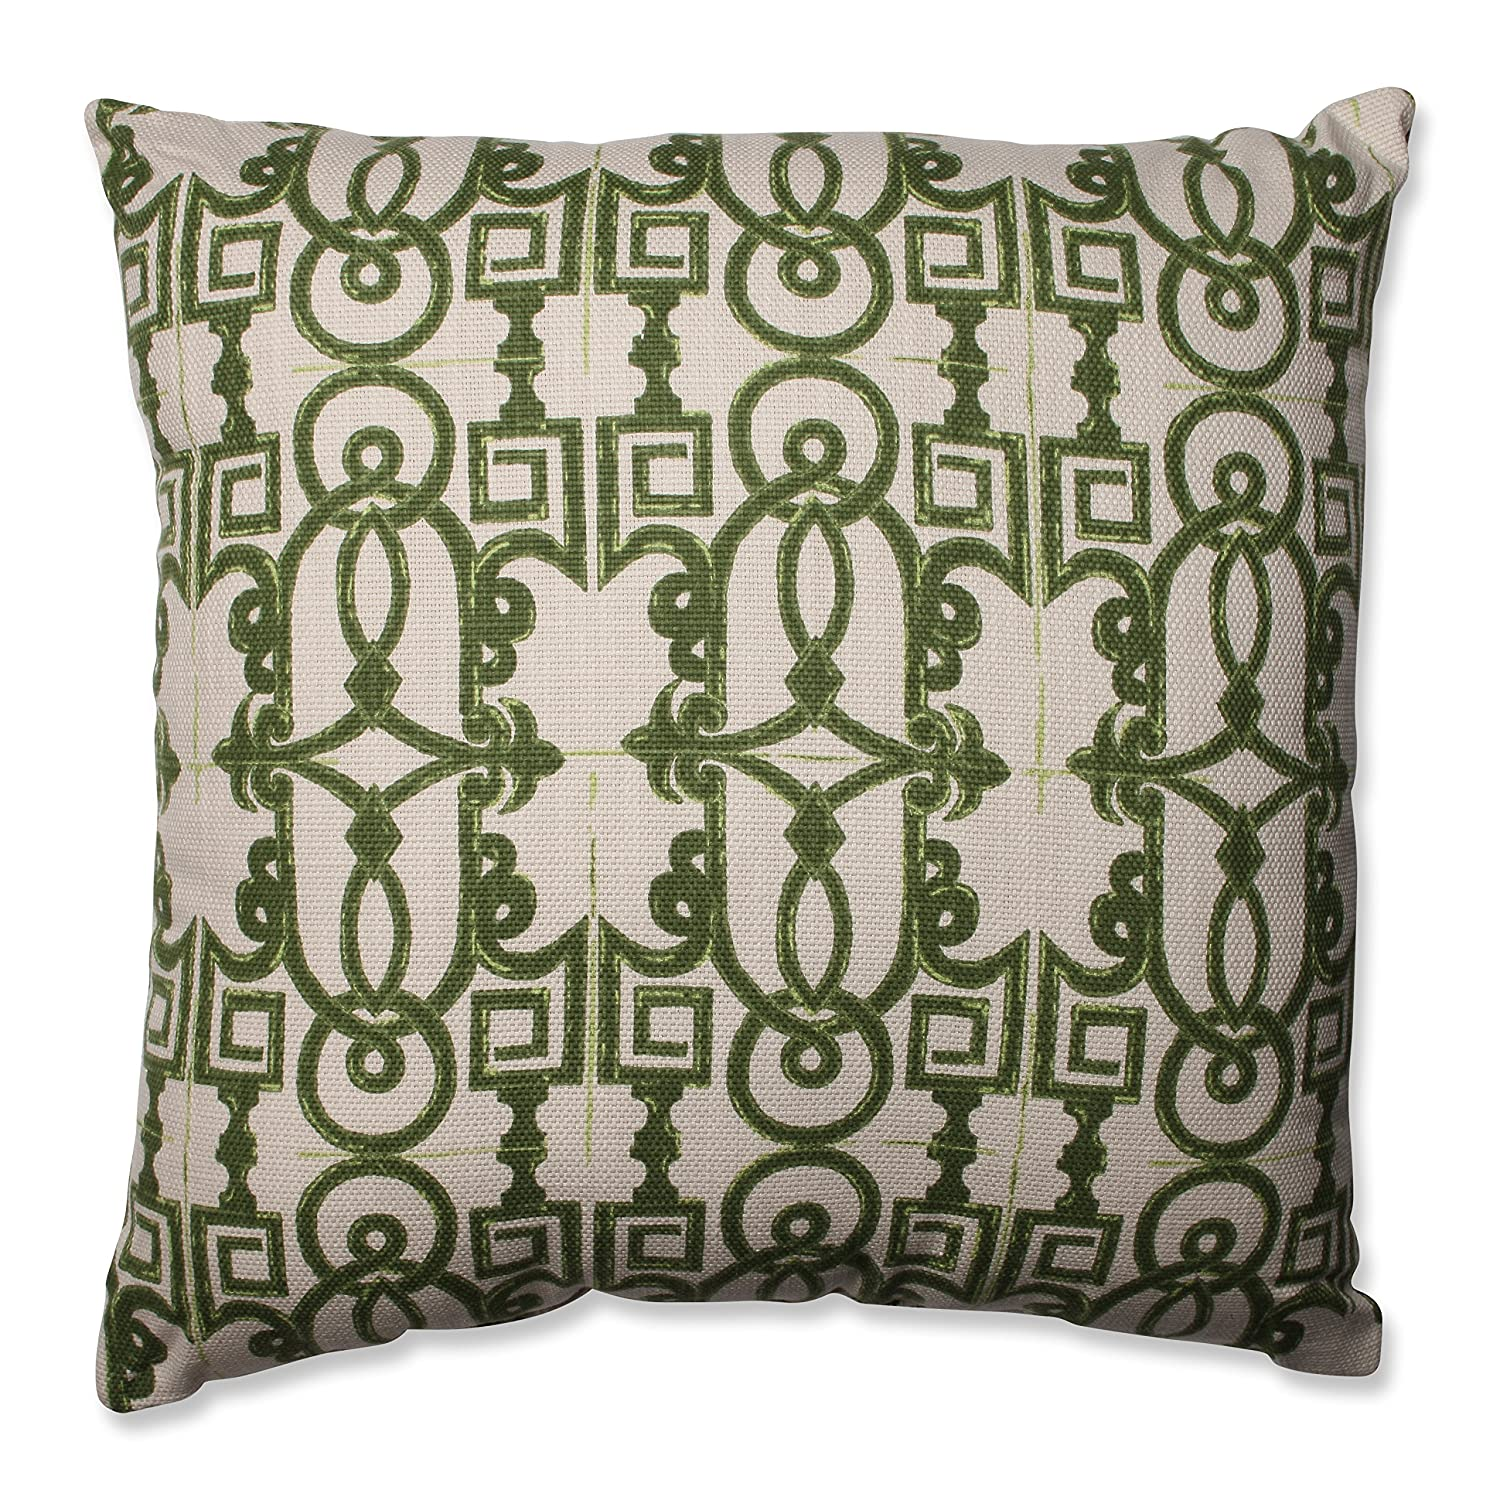 580951 Pillow Perfect Seville Olive Throw Pillow 18 18 Inc